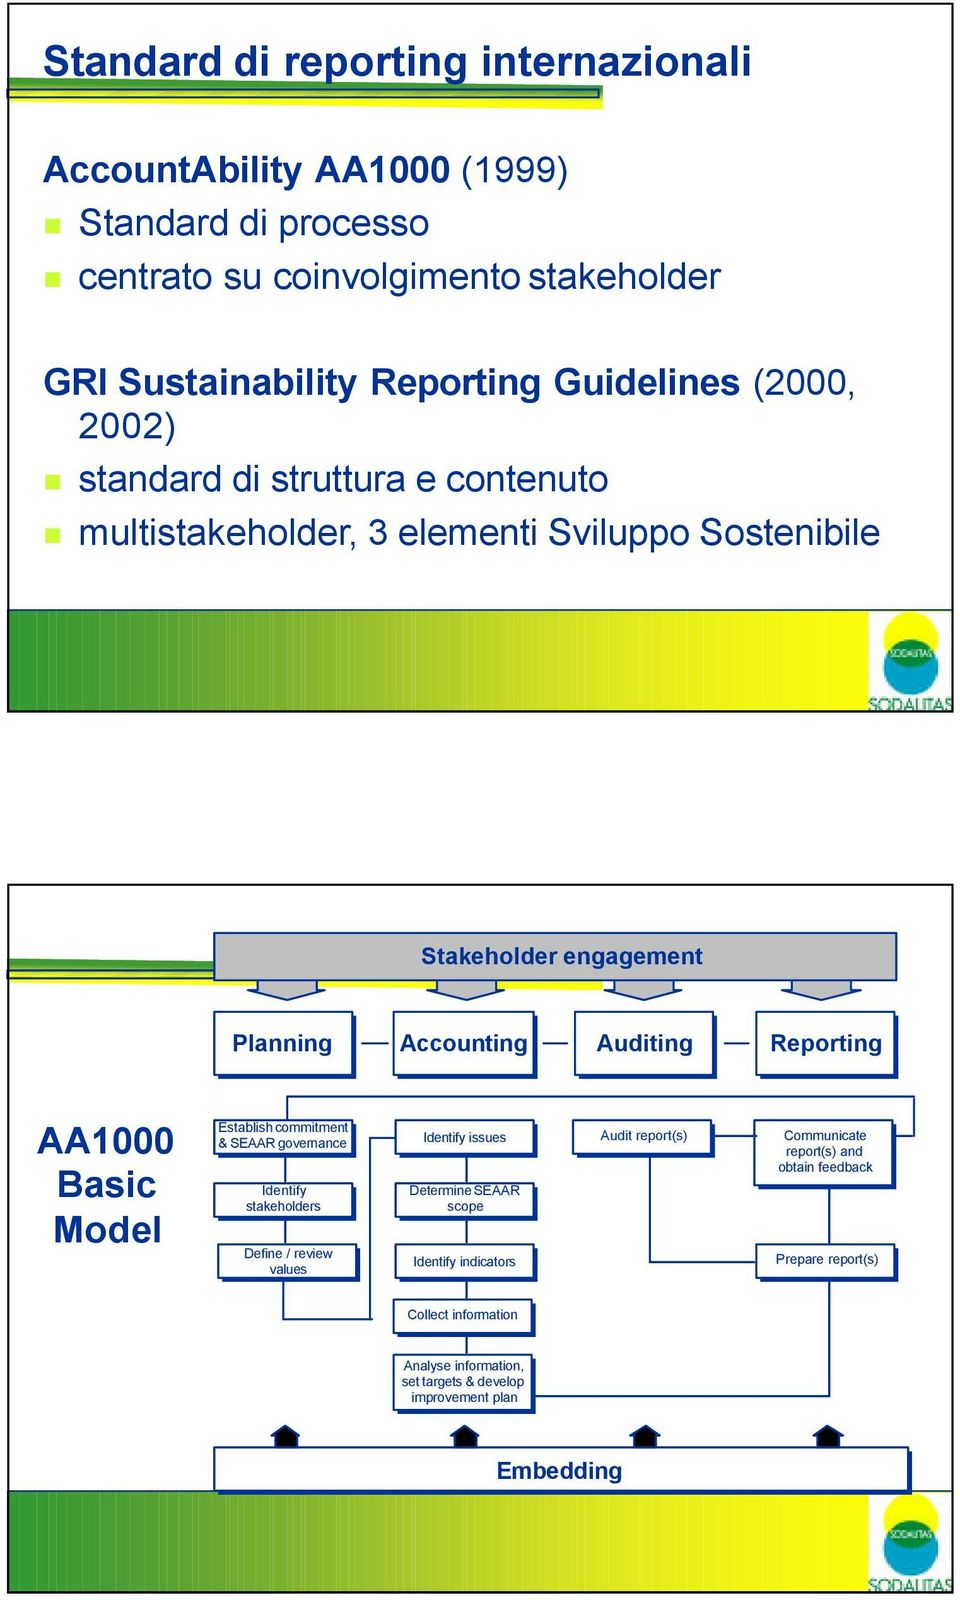 Basic Model Establish commitment & SEAAR governance Identify stakeholders Define / / review values Identify issues Determine SEAAR scope Identify indicators Audit